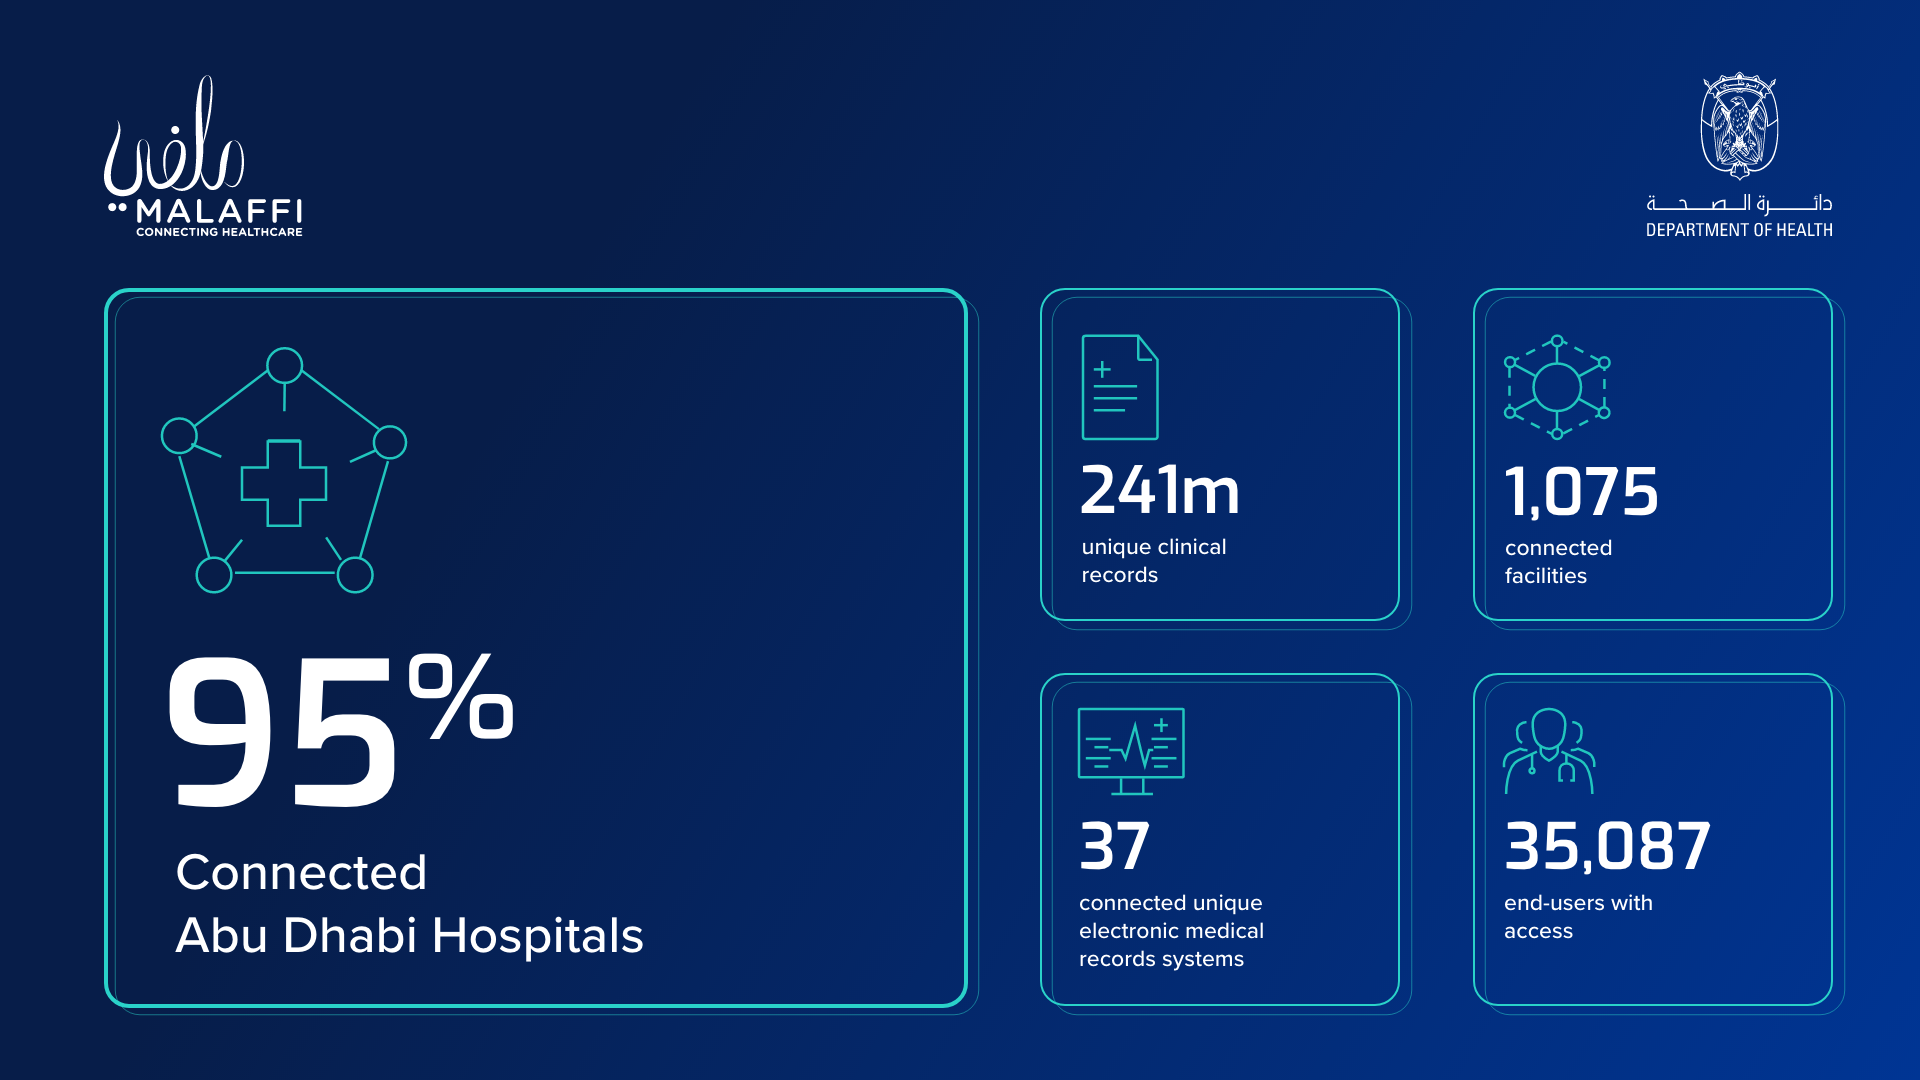 Abu Dhabi Department of Health announces 95% of hospitals sharing data with Malaffi thumbnail